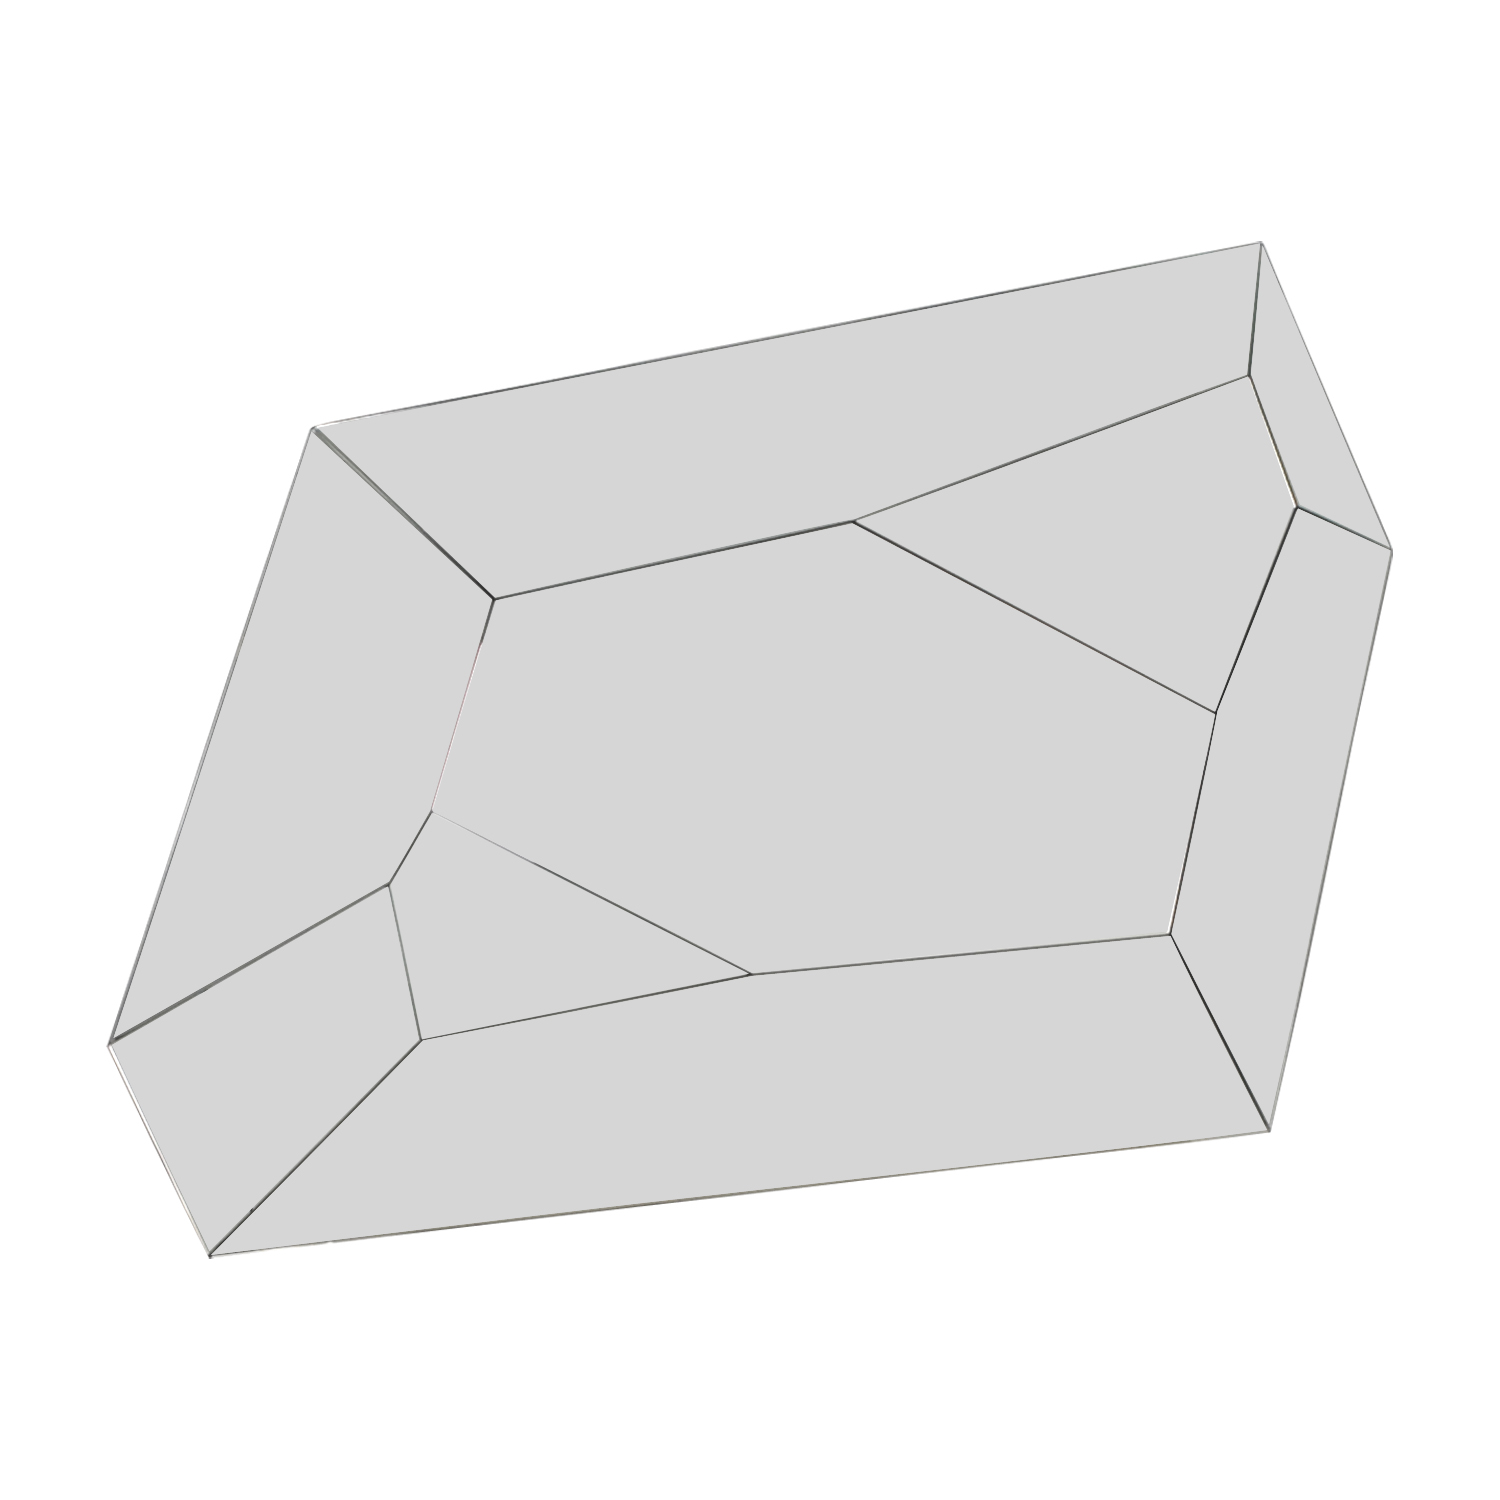 Multiple Angled Mirror dimensions